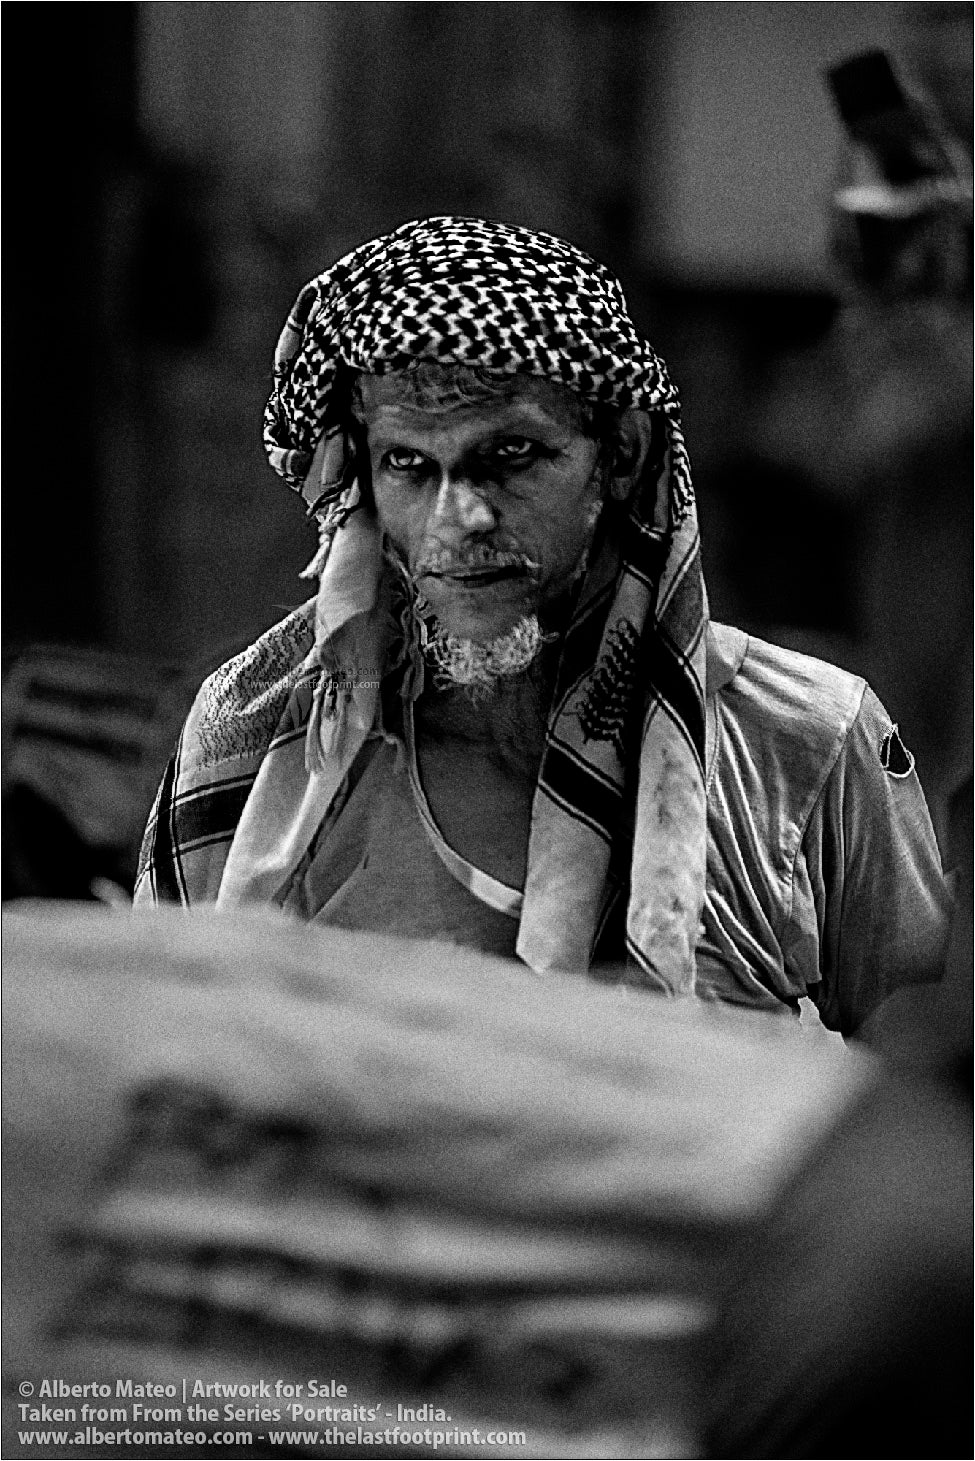 Portrait of thoughtful Porter, Bara Bazar, Kolkata, India.